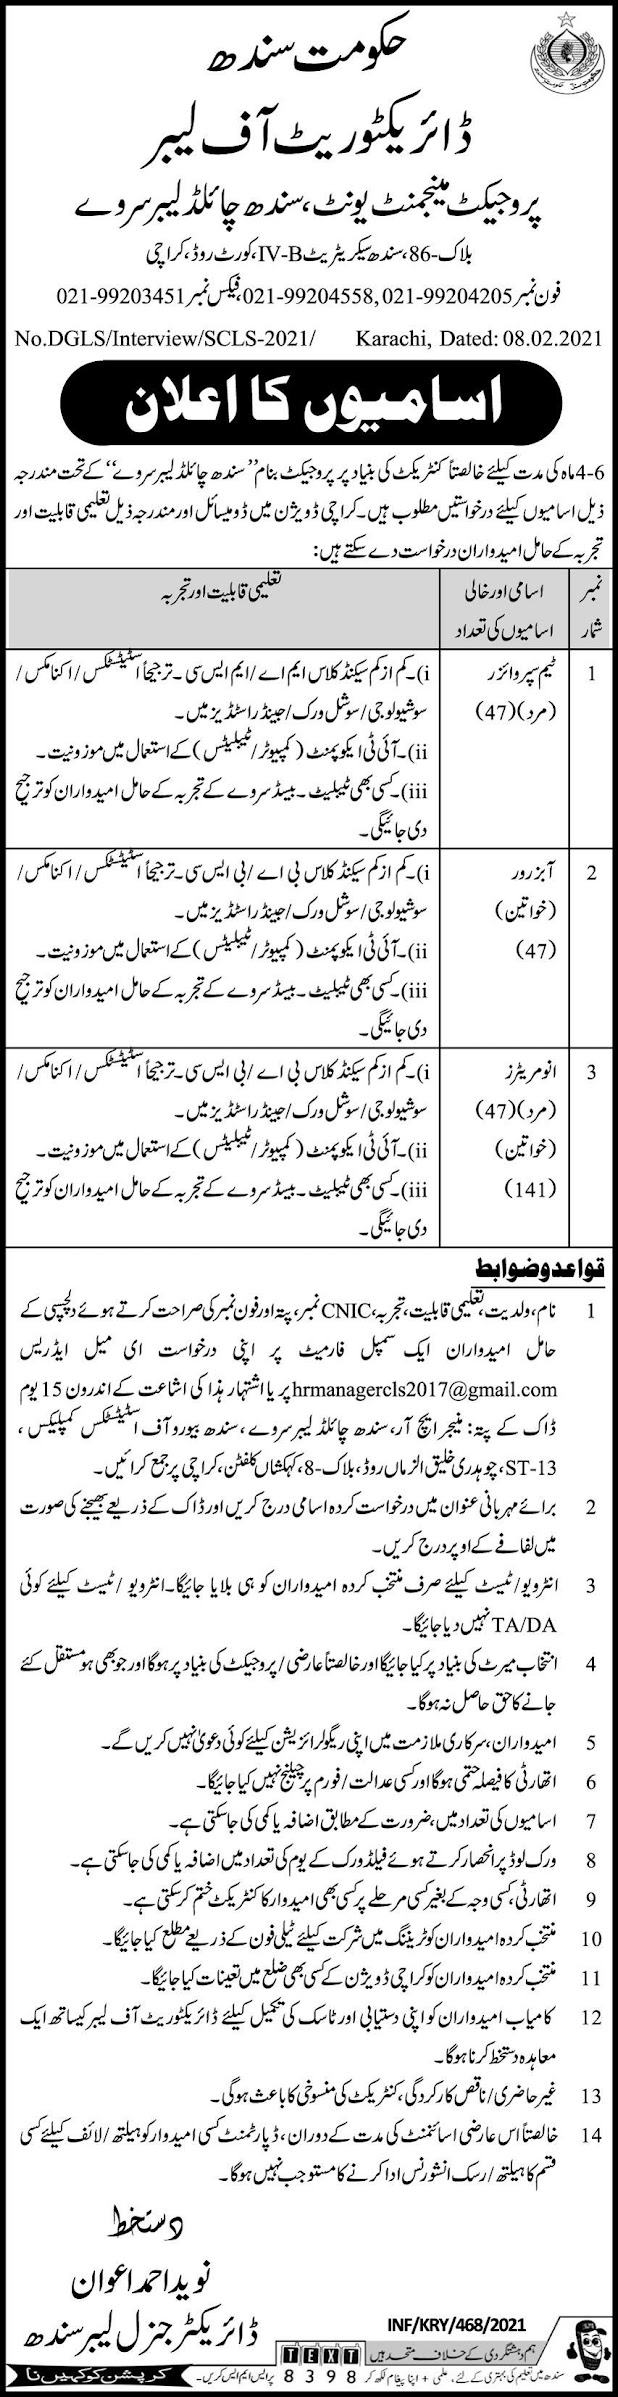 Labour Department Jobs 2021 In Sindh - Online Apply For Sindh Govt Labour Jobs 22 feb 2021